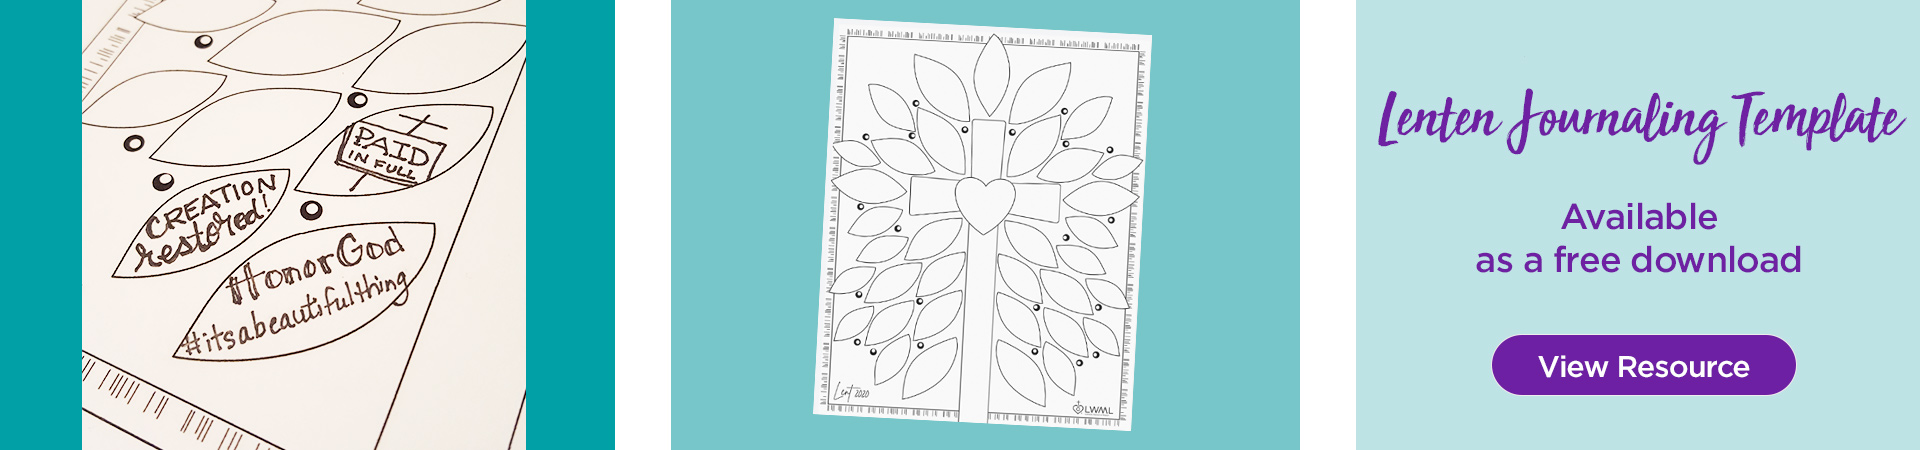 Lenten Journaling Template available as a free download